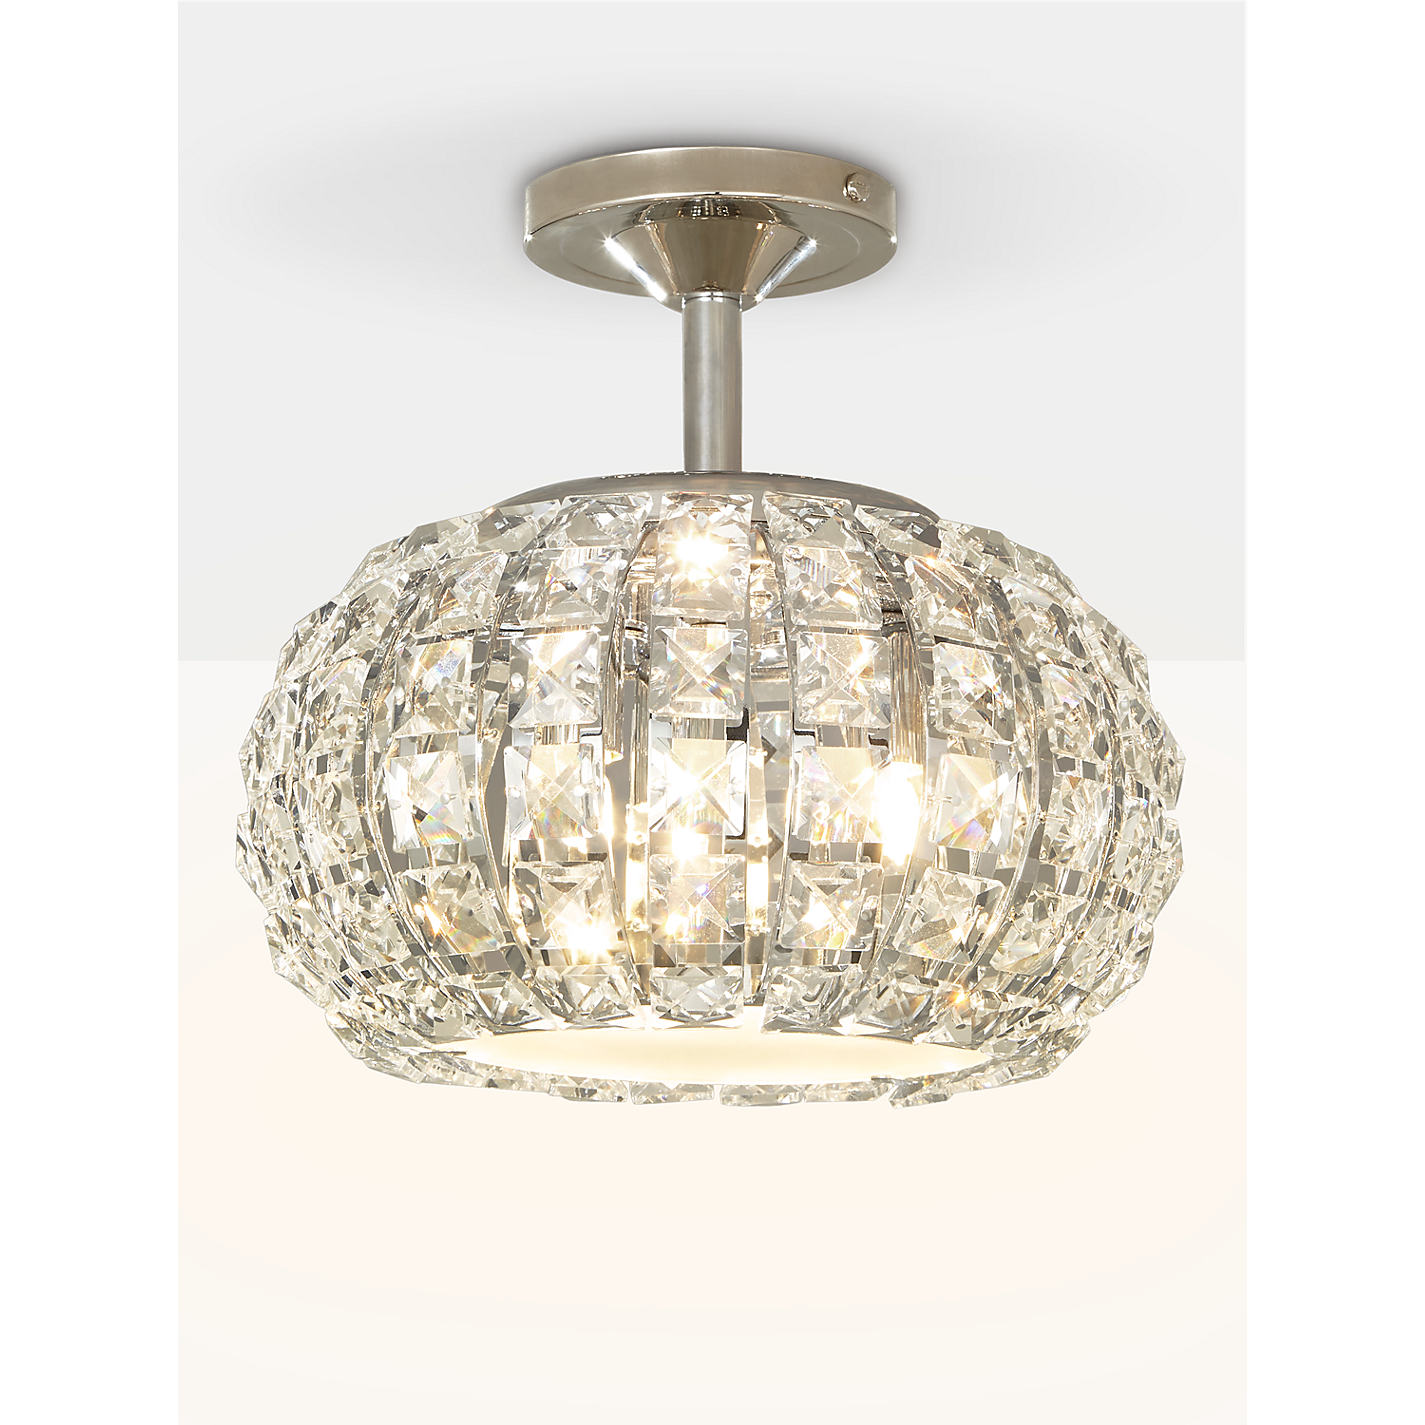 Buy john lewis venus ceiling light crystal and chrome john lewis buy john lewis venus ceiling light crystal and chrome online at johnlewis aloadofball Gallery